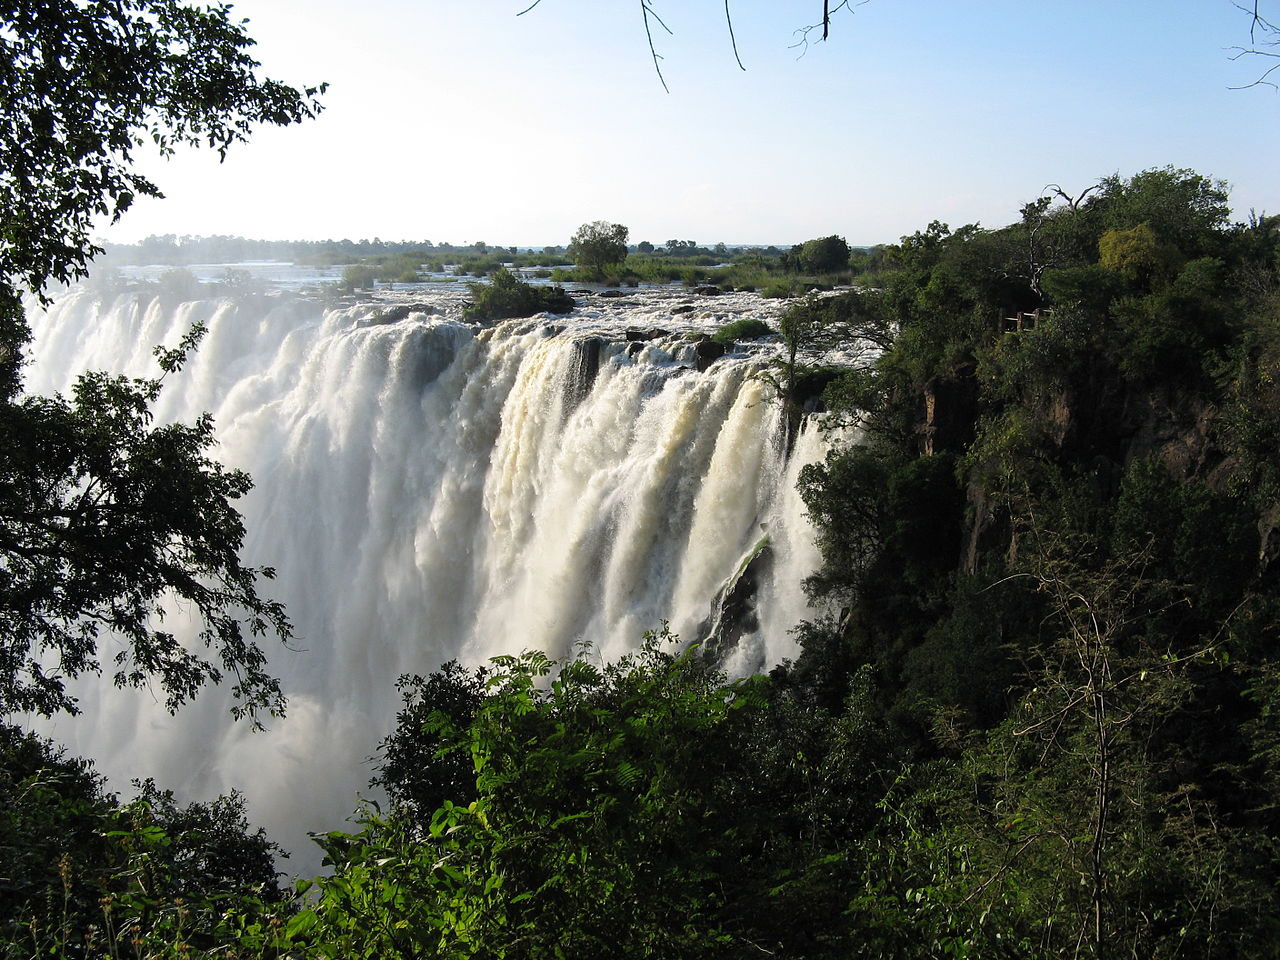 FileVictoria falls zambiajpg  Wikimedia Commons